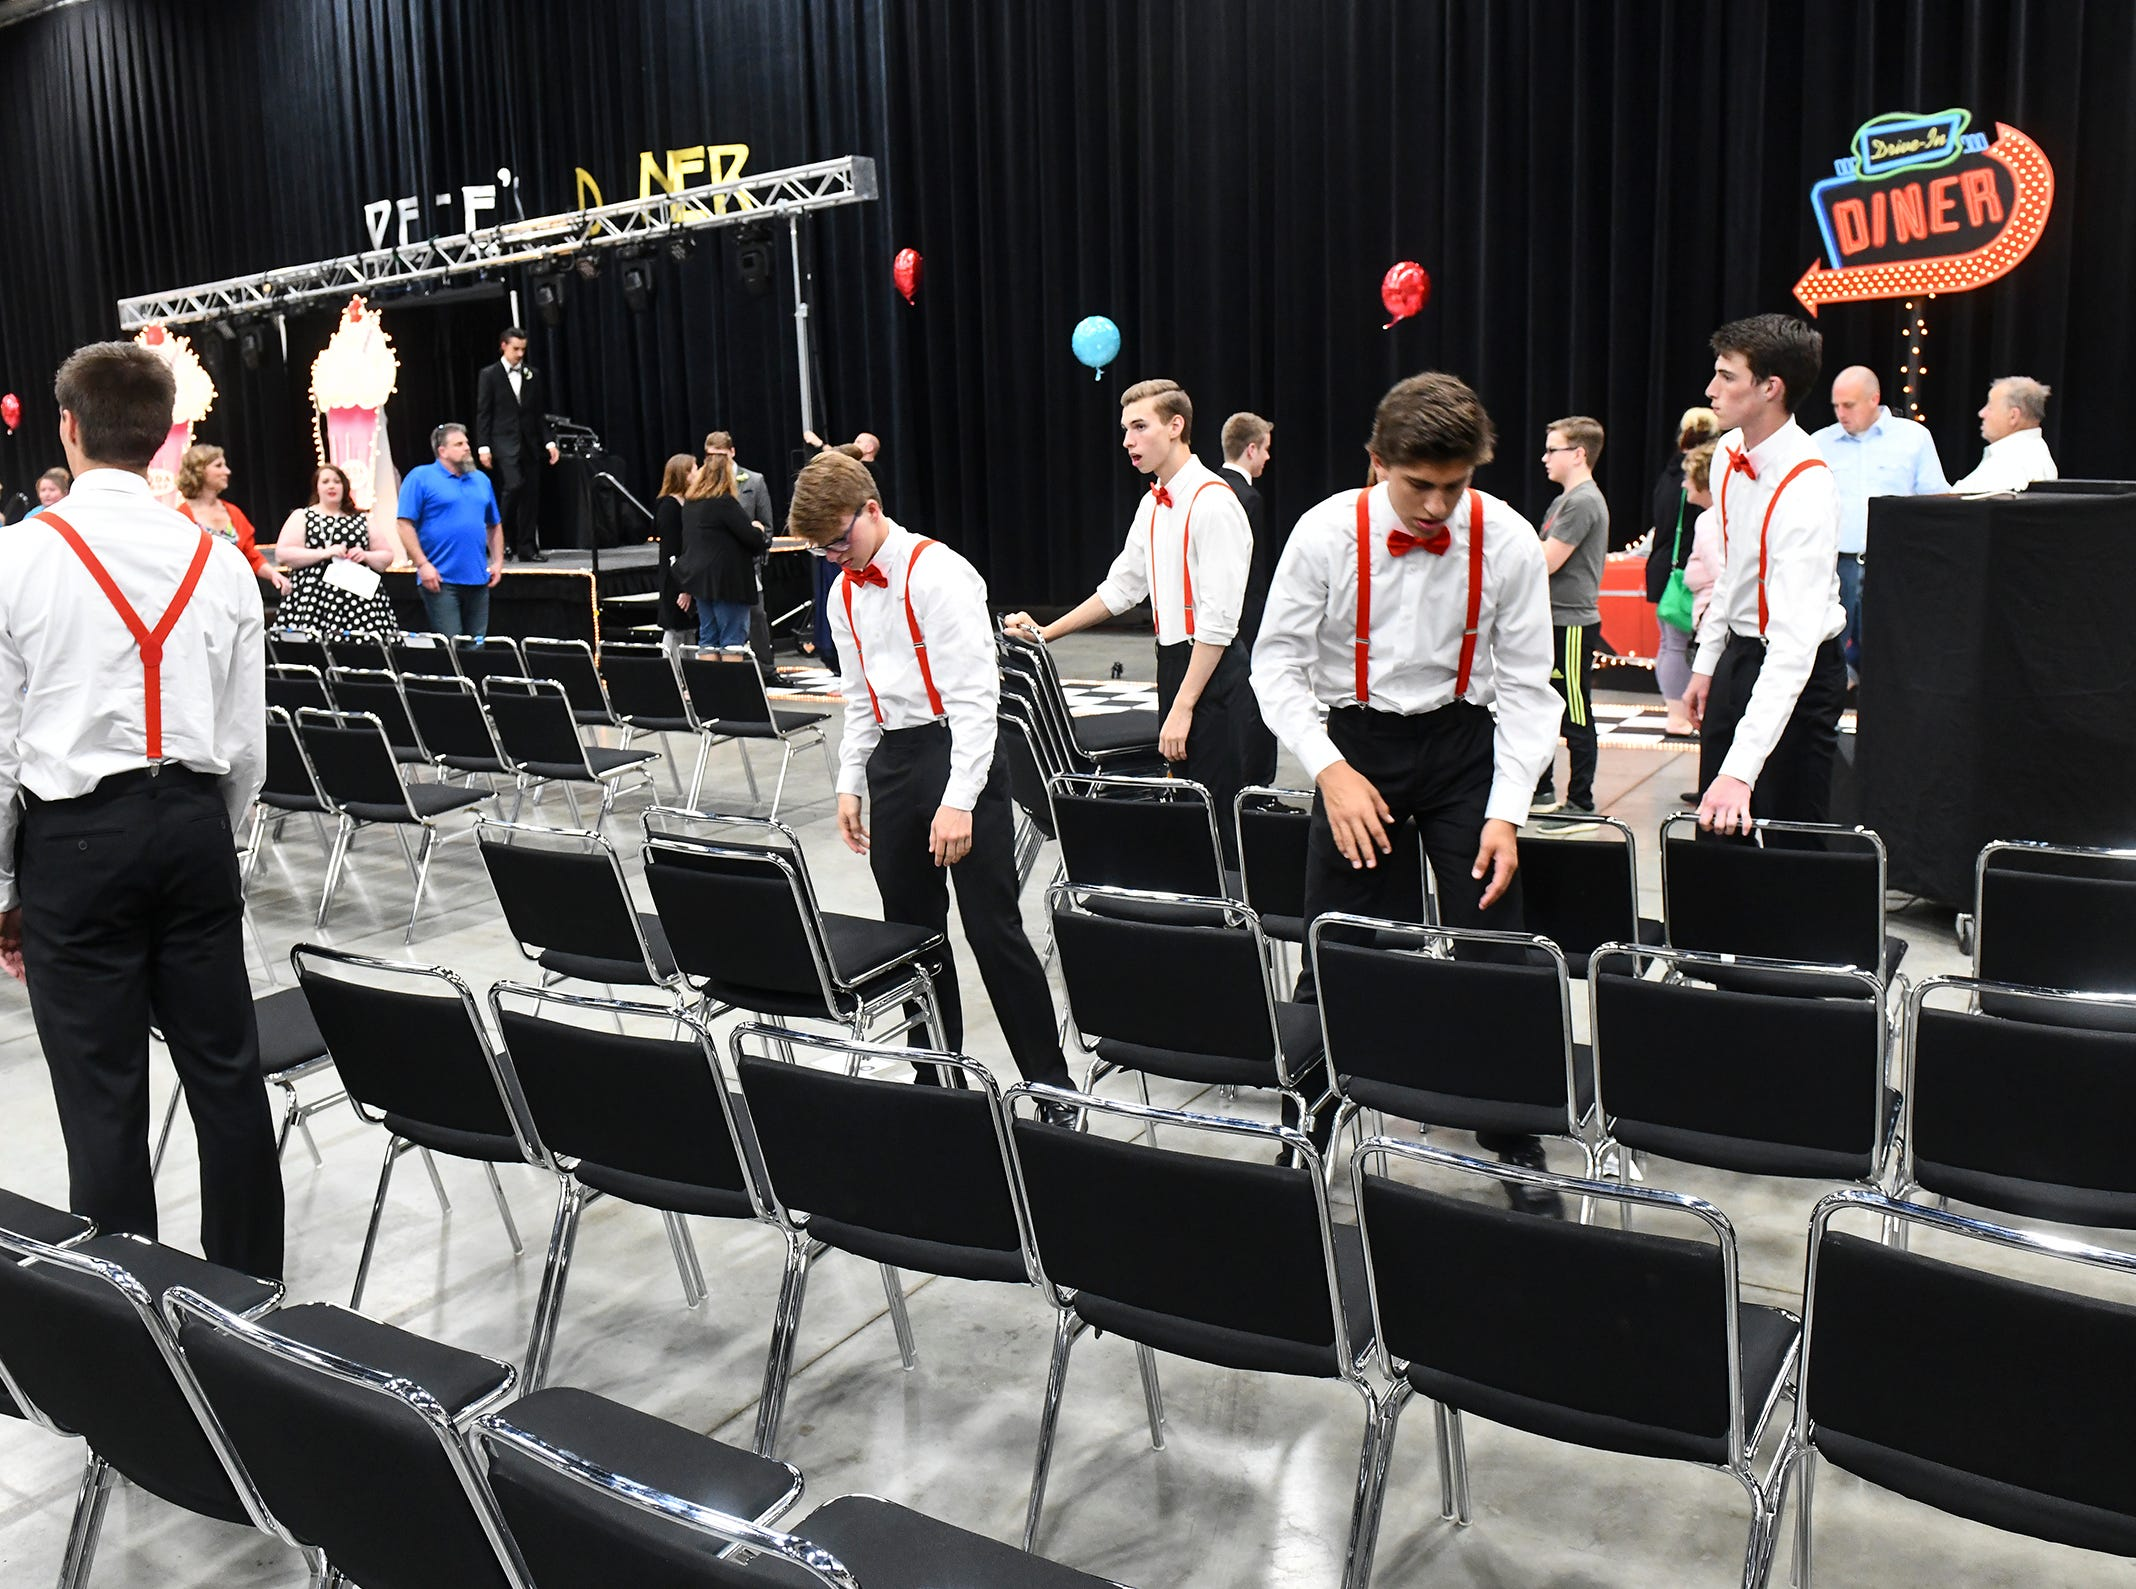 Chairs are removed following grand march during Sartell High School prom Saturday, May 4, in St. Cloud.